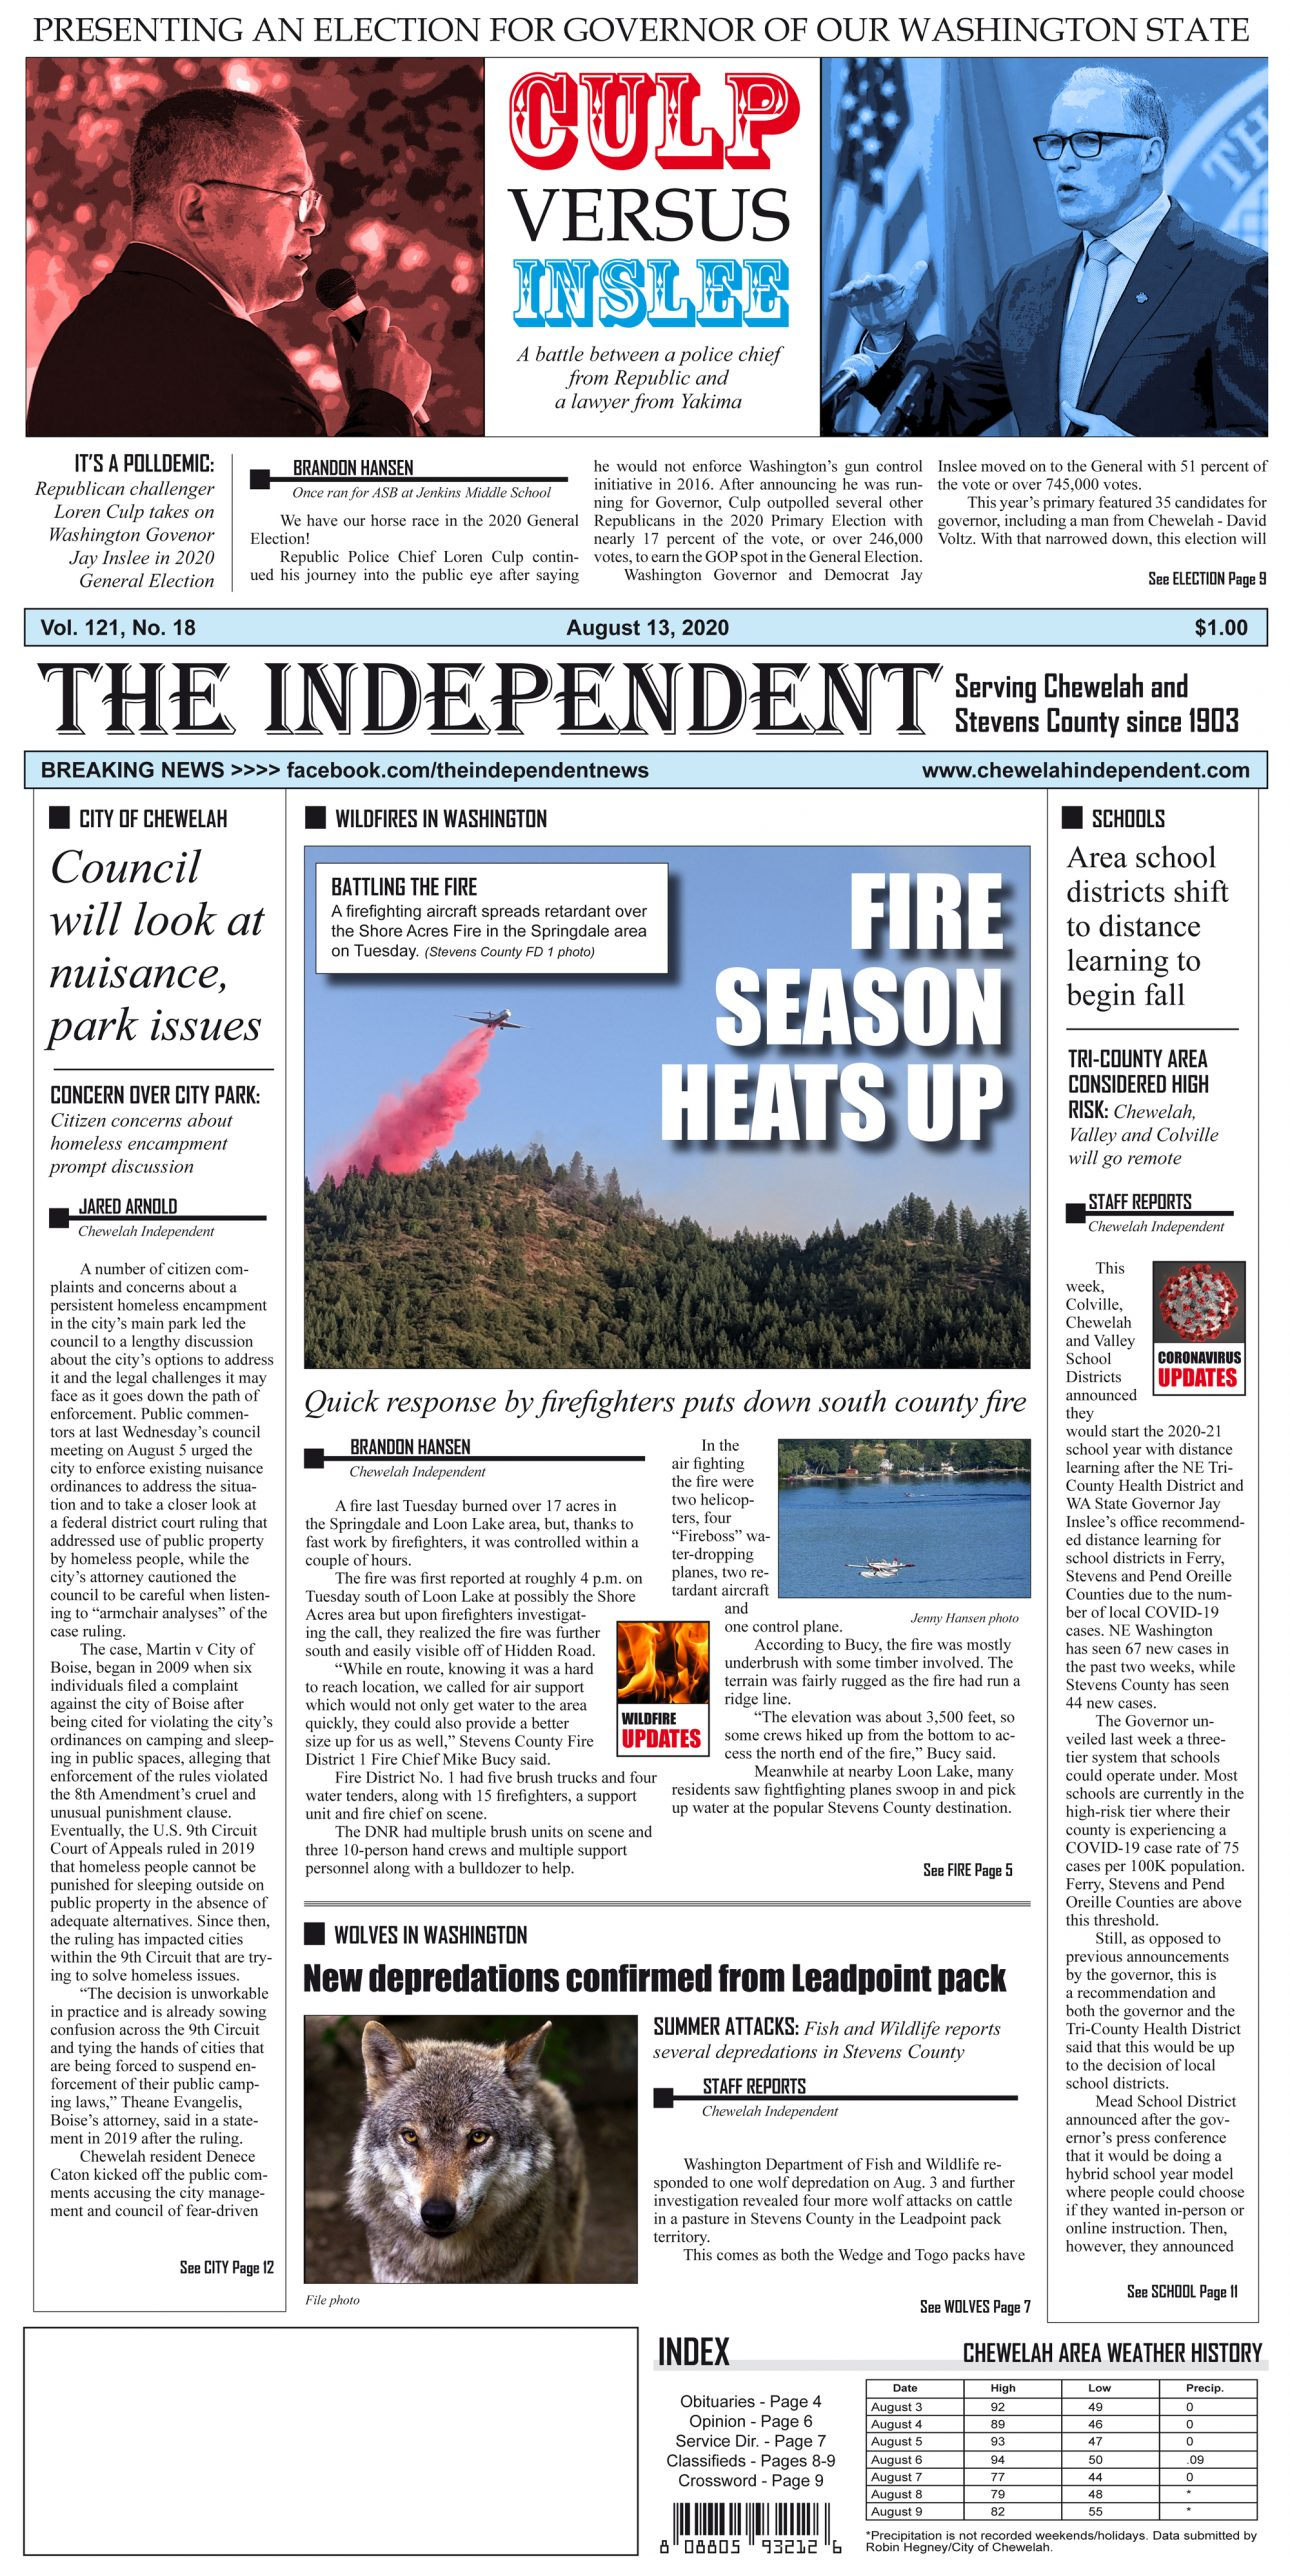 Here is today's print edition of The Chewelah Independent, which you can subscribe to for $30 a year by emailing theindependent@centurytel.net or calling 509-935-8422.